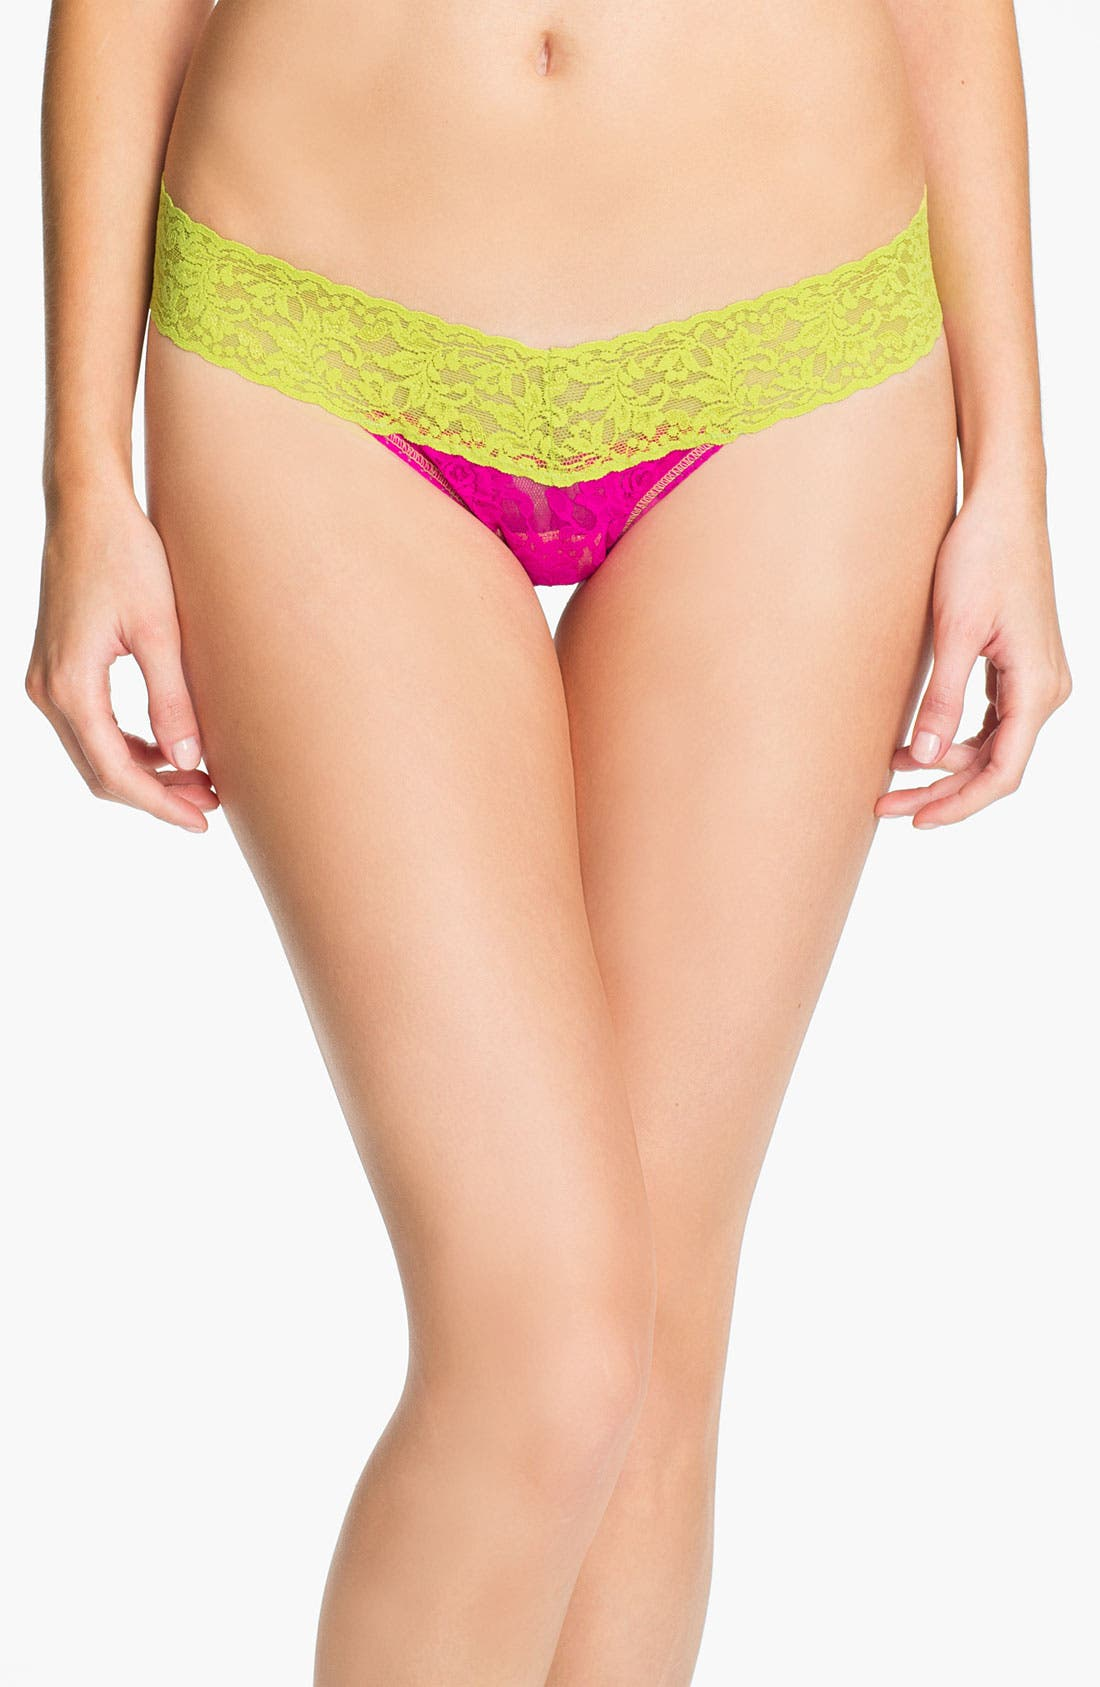 Alternate Image 1 Selected - Hanky Panky 'Colorplay' Low Rise Thong